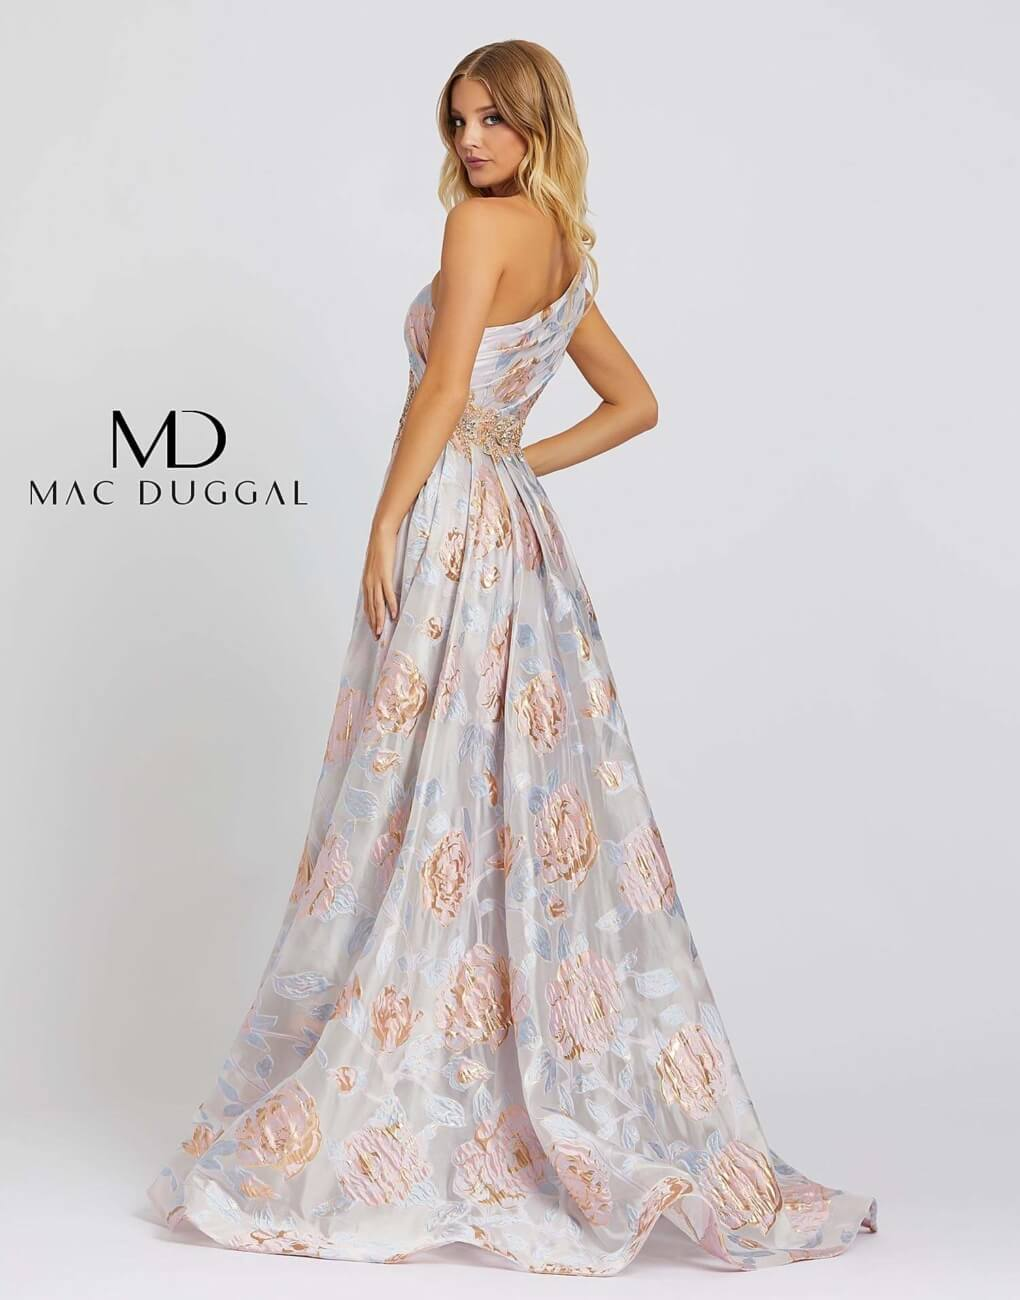 Style 67124M Mac Duggal Multicolor Size 6 One Shoulder Pageant Tall Height A-line Dress on Queenly